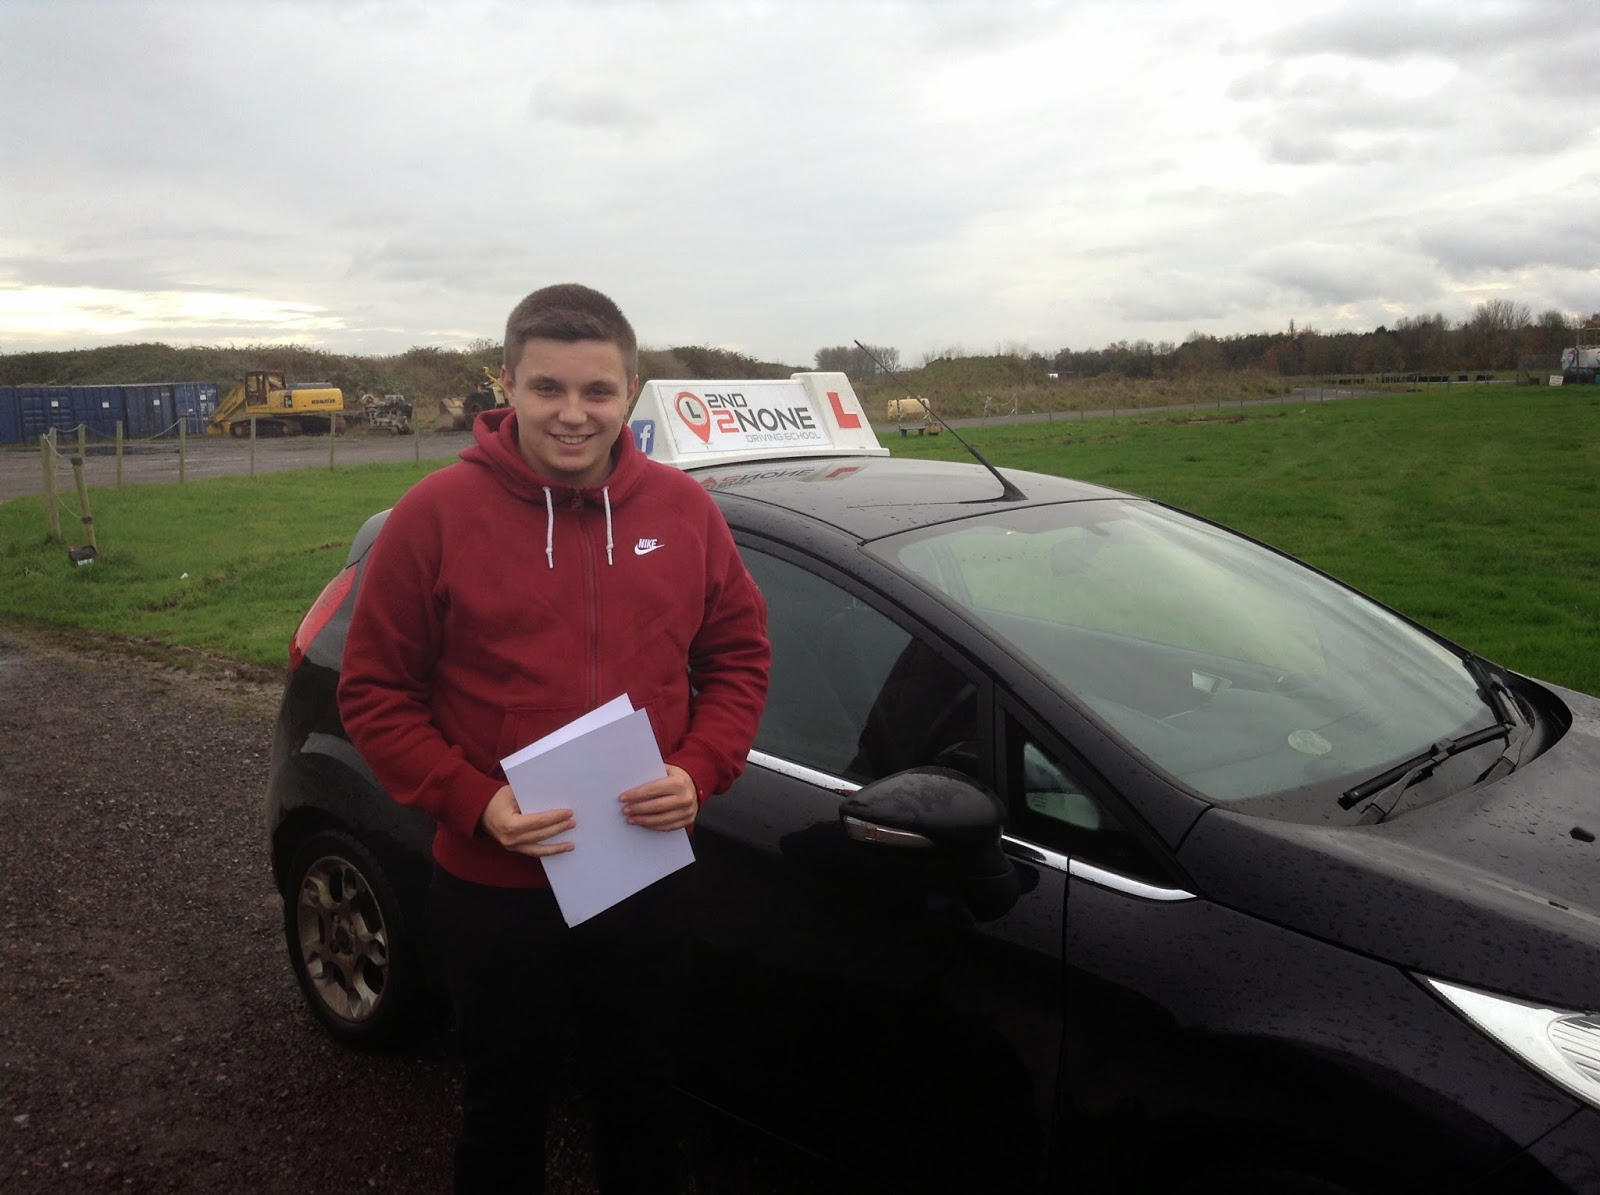 Under 17s driving lessons at Henstridge Airfield